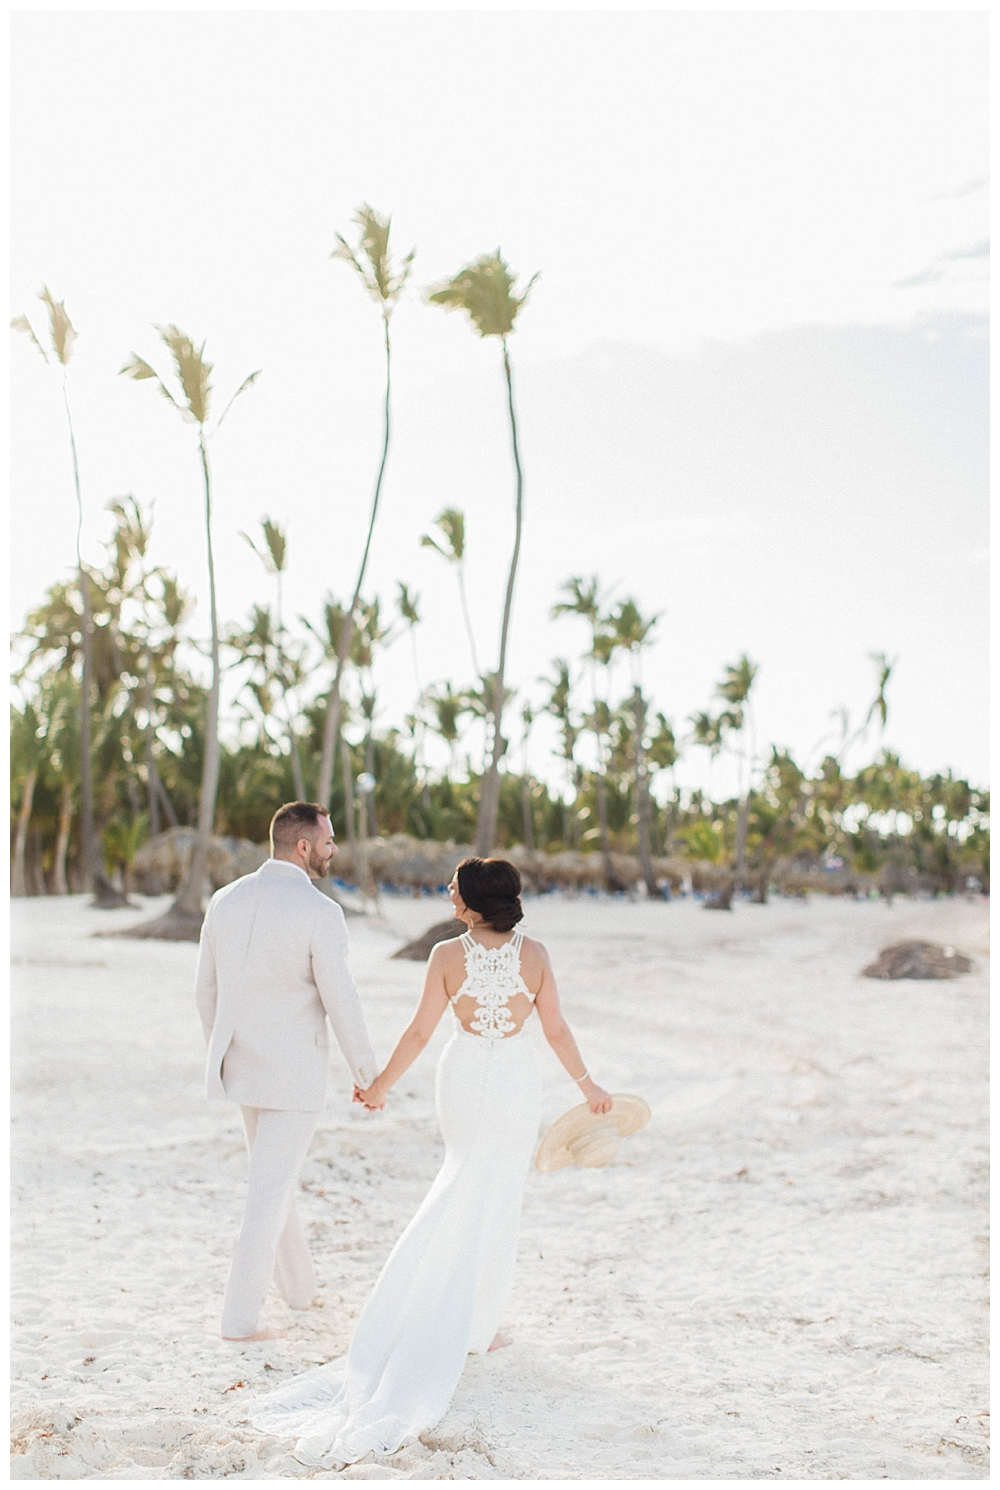 christinakarstphotography_dominicanrepublicwedding-191.jpg